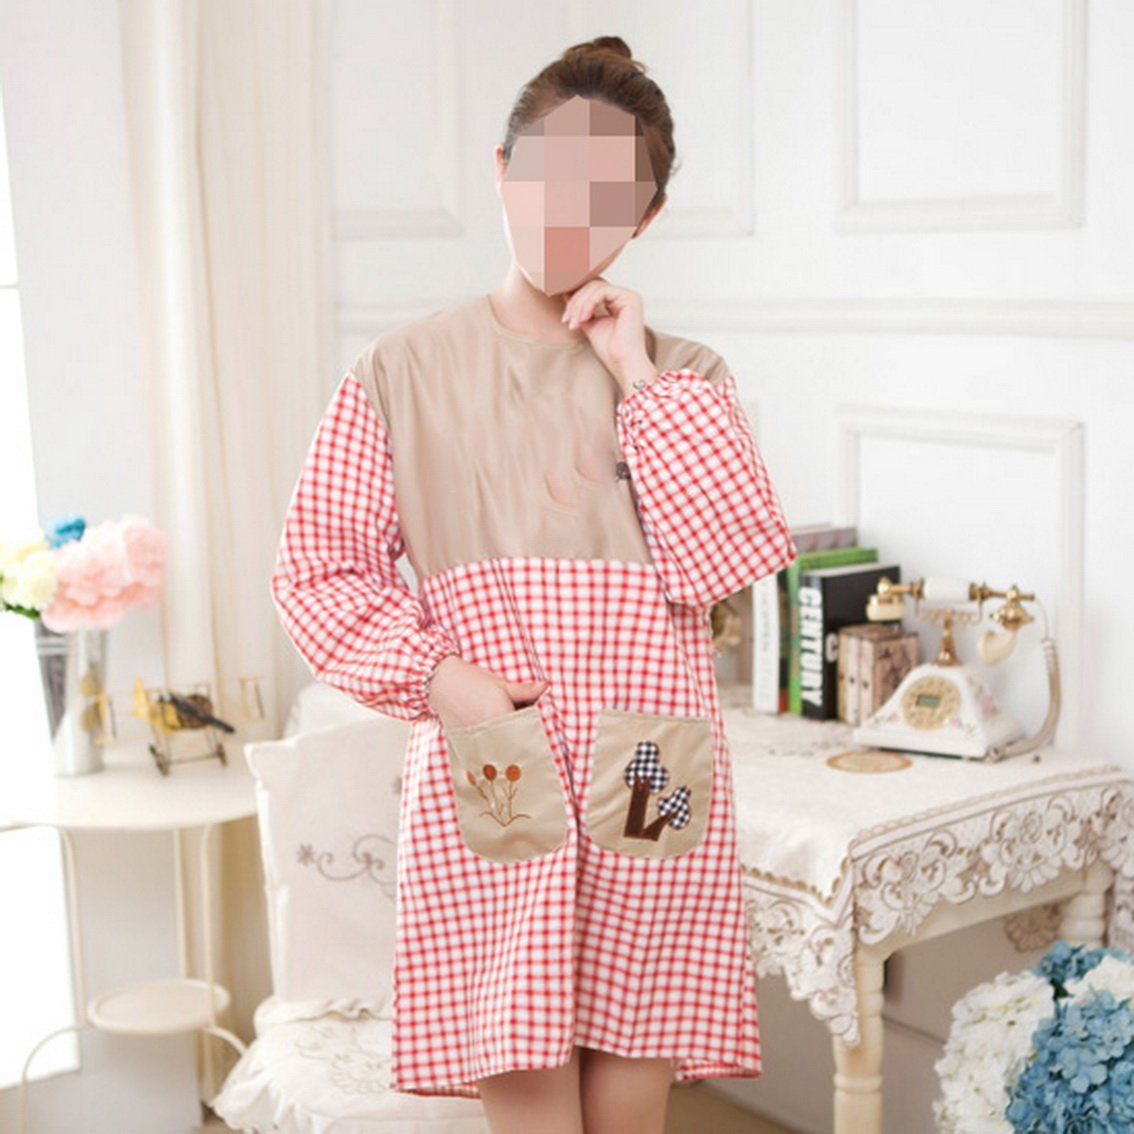 fengg2030shann Long-sleeved cute aprons kitchen cooking apron adult female fashion simple gowns with sleeves. Aprons apron aprons long-sleeved gowns aprons gowns